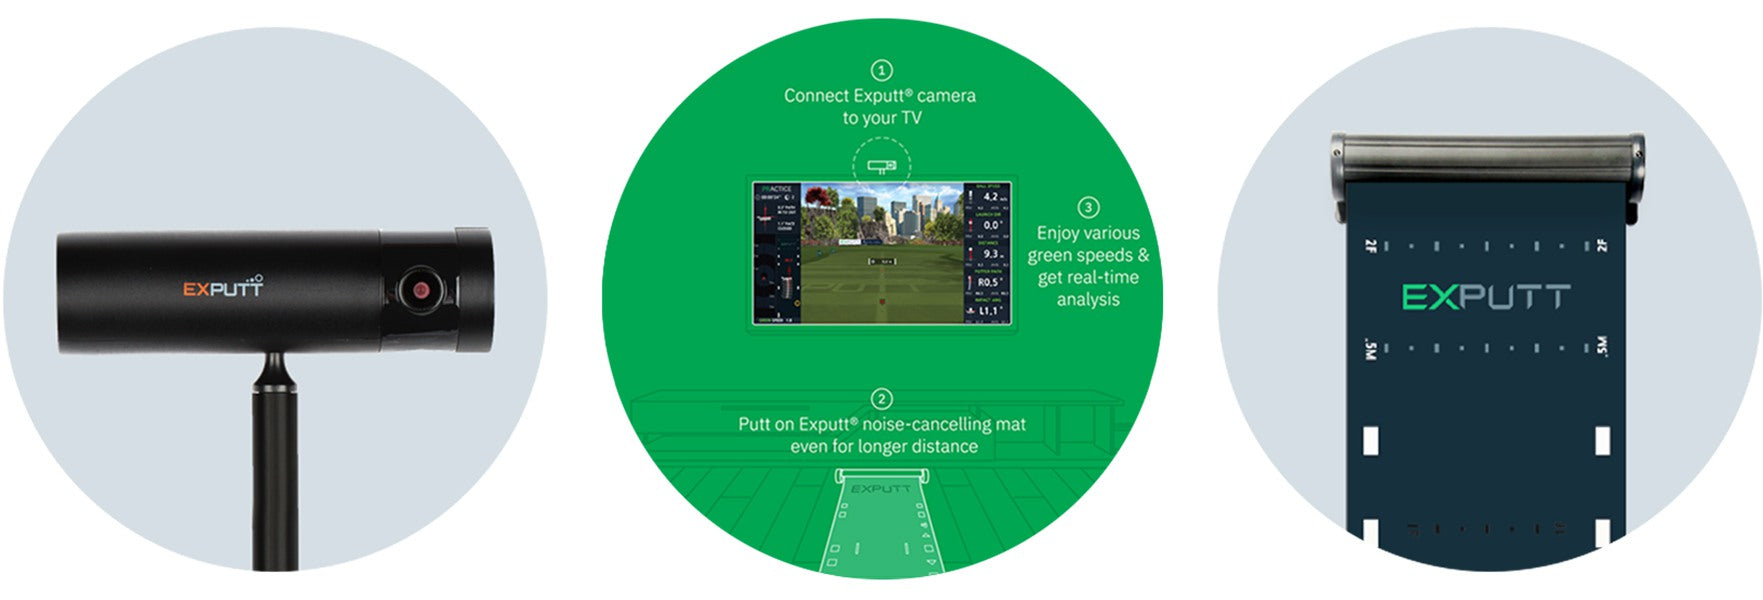 Exputt Real Time Putting Simulator Technology